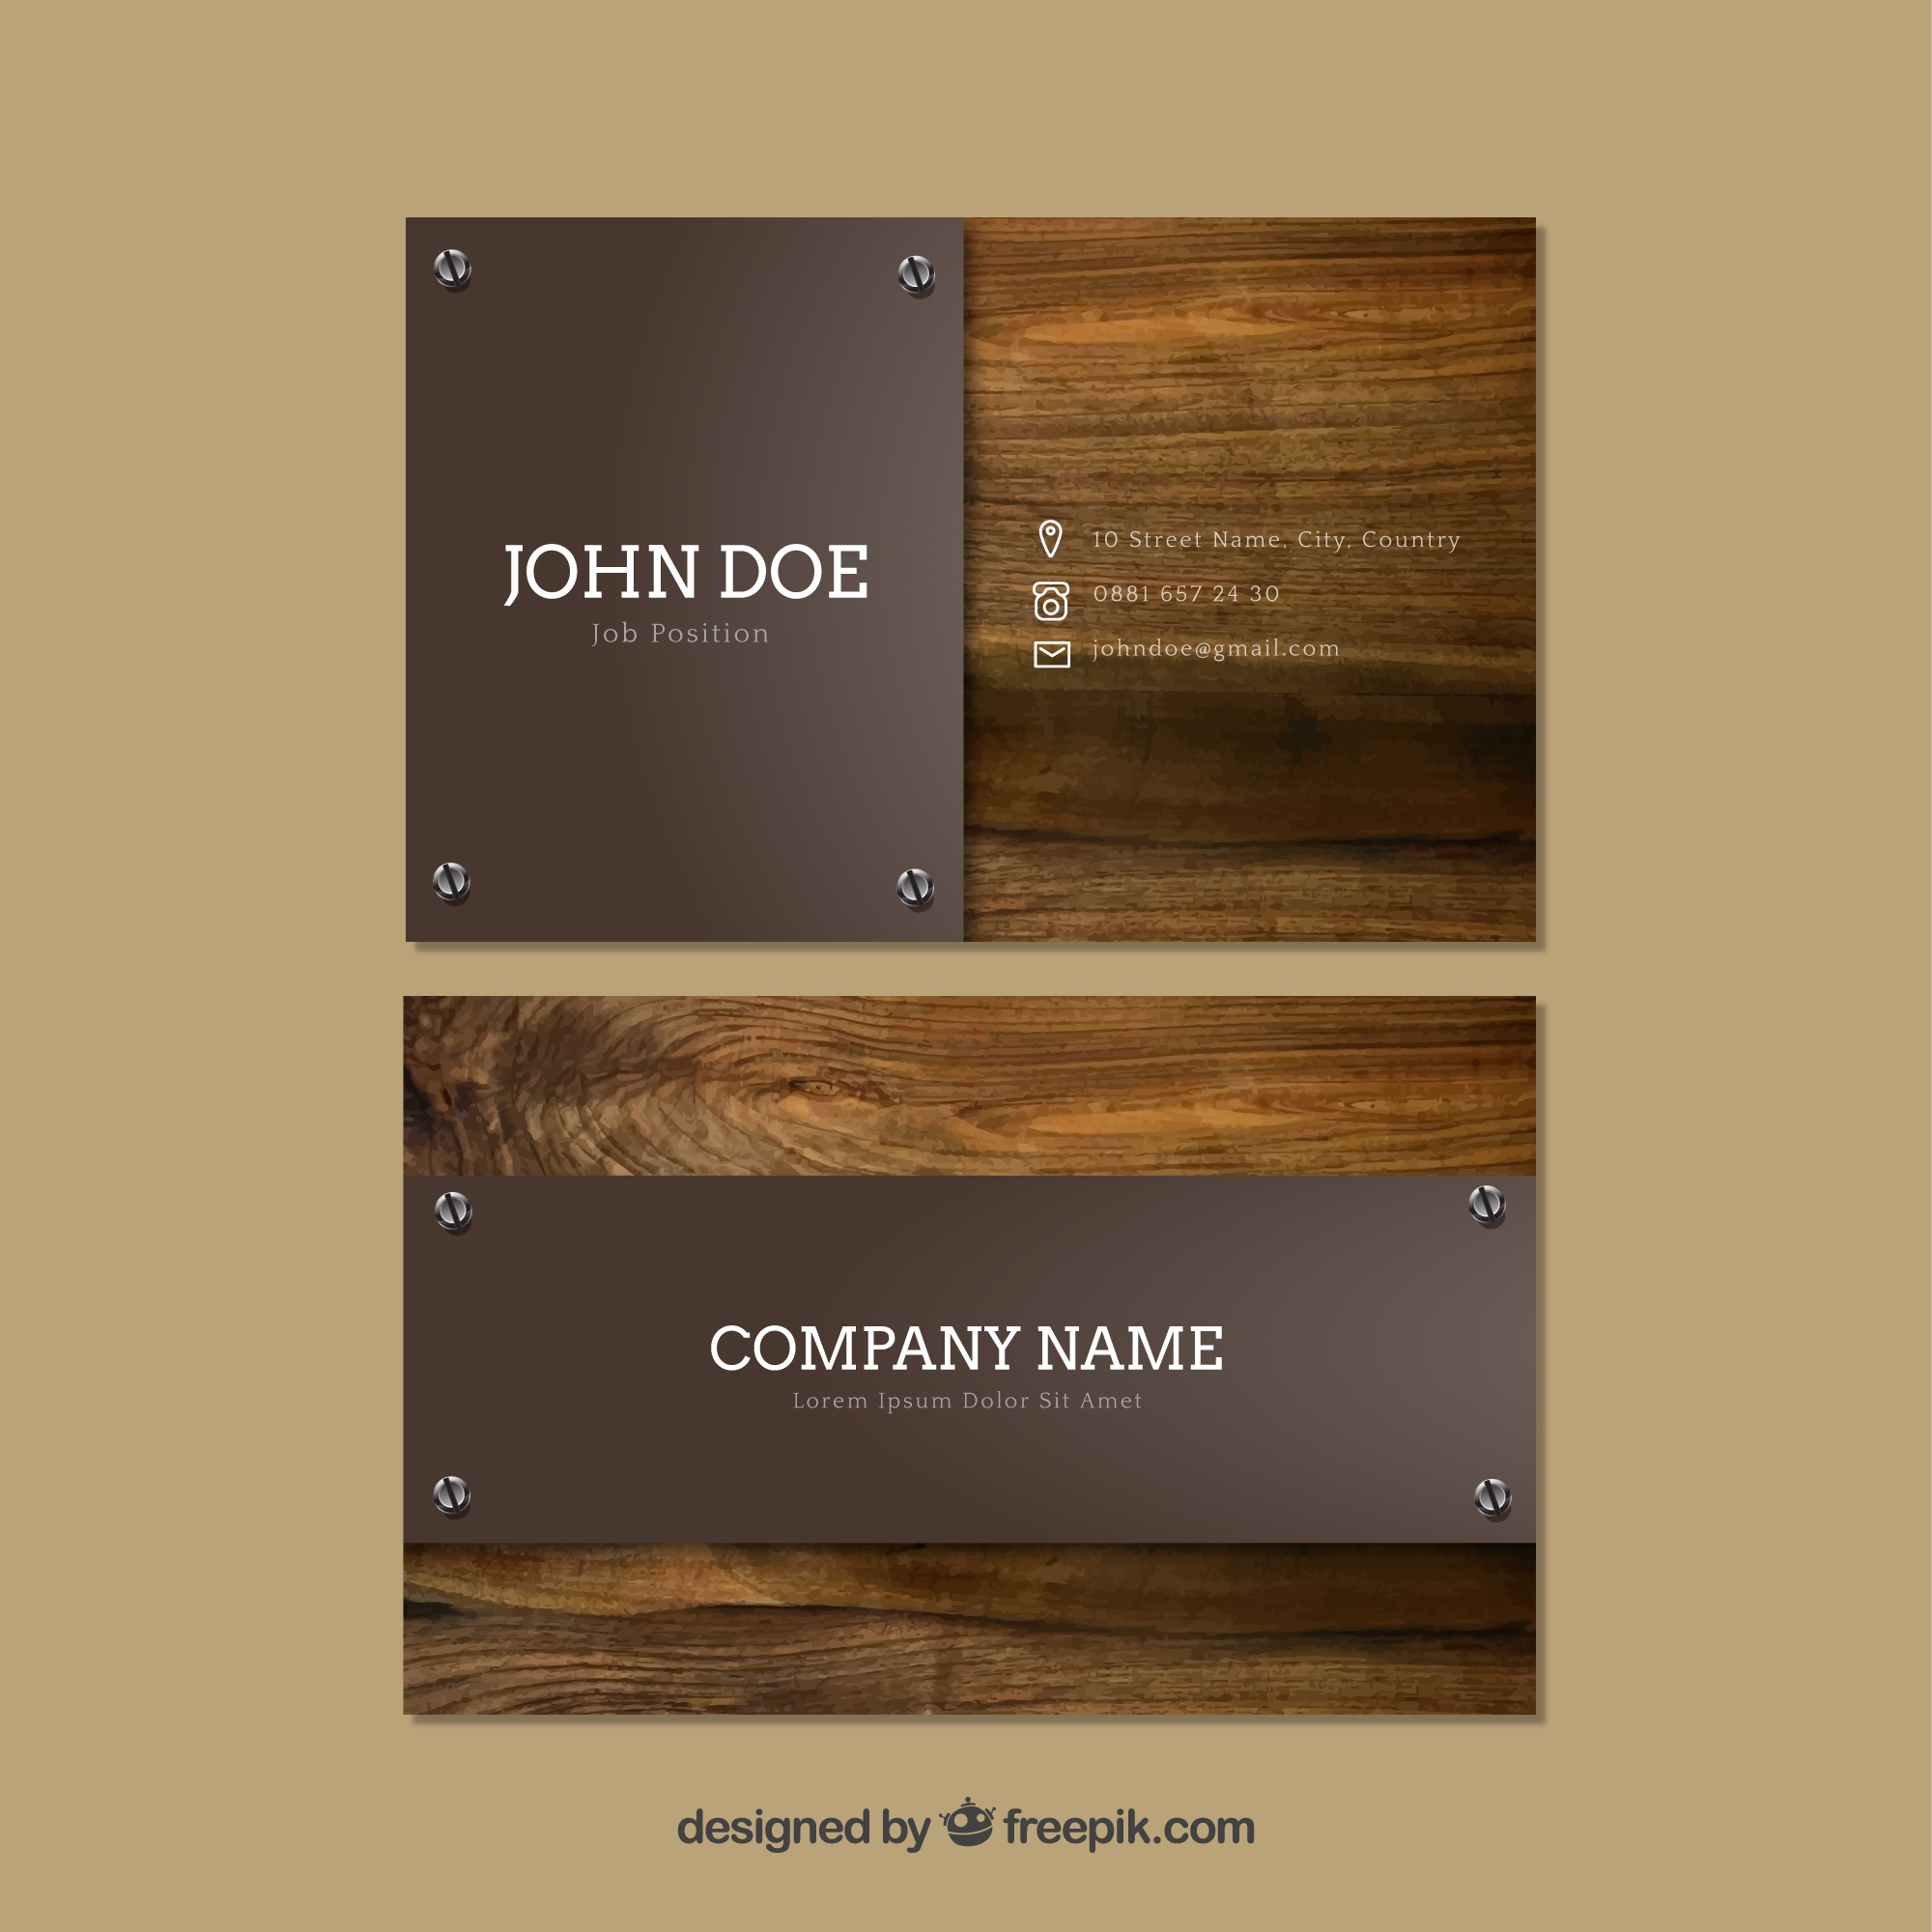 Business cards with wooden background